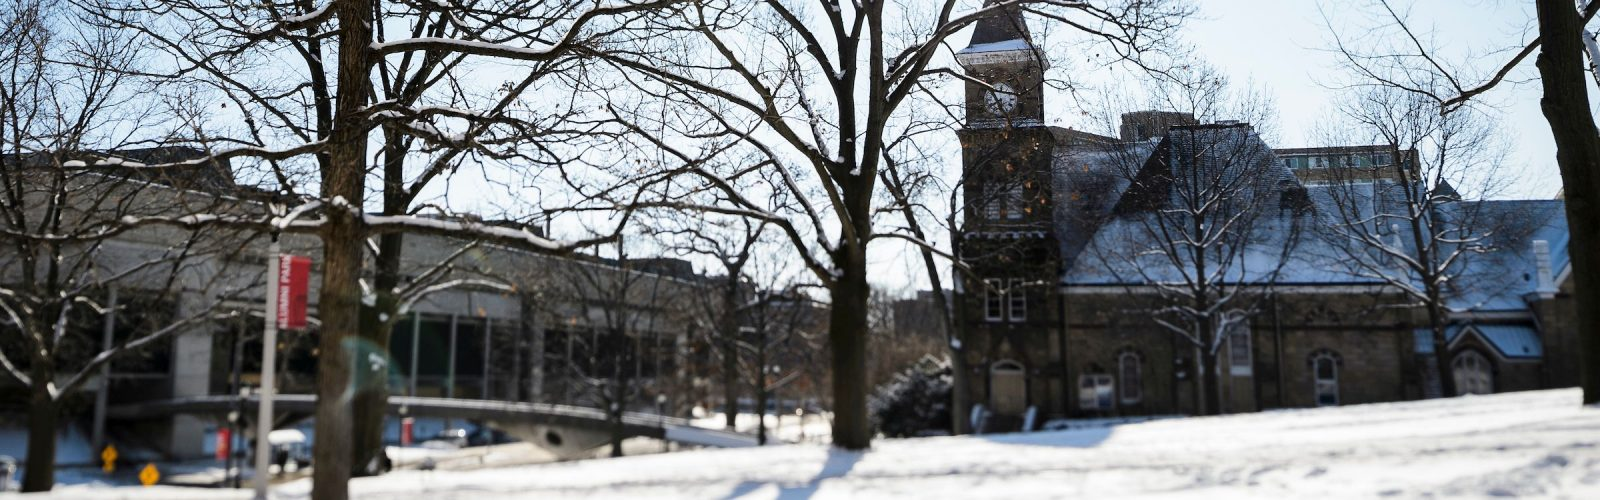 bascom and music hall in the snow